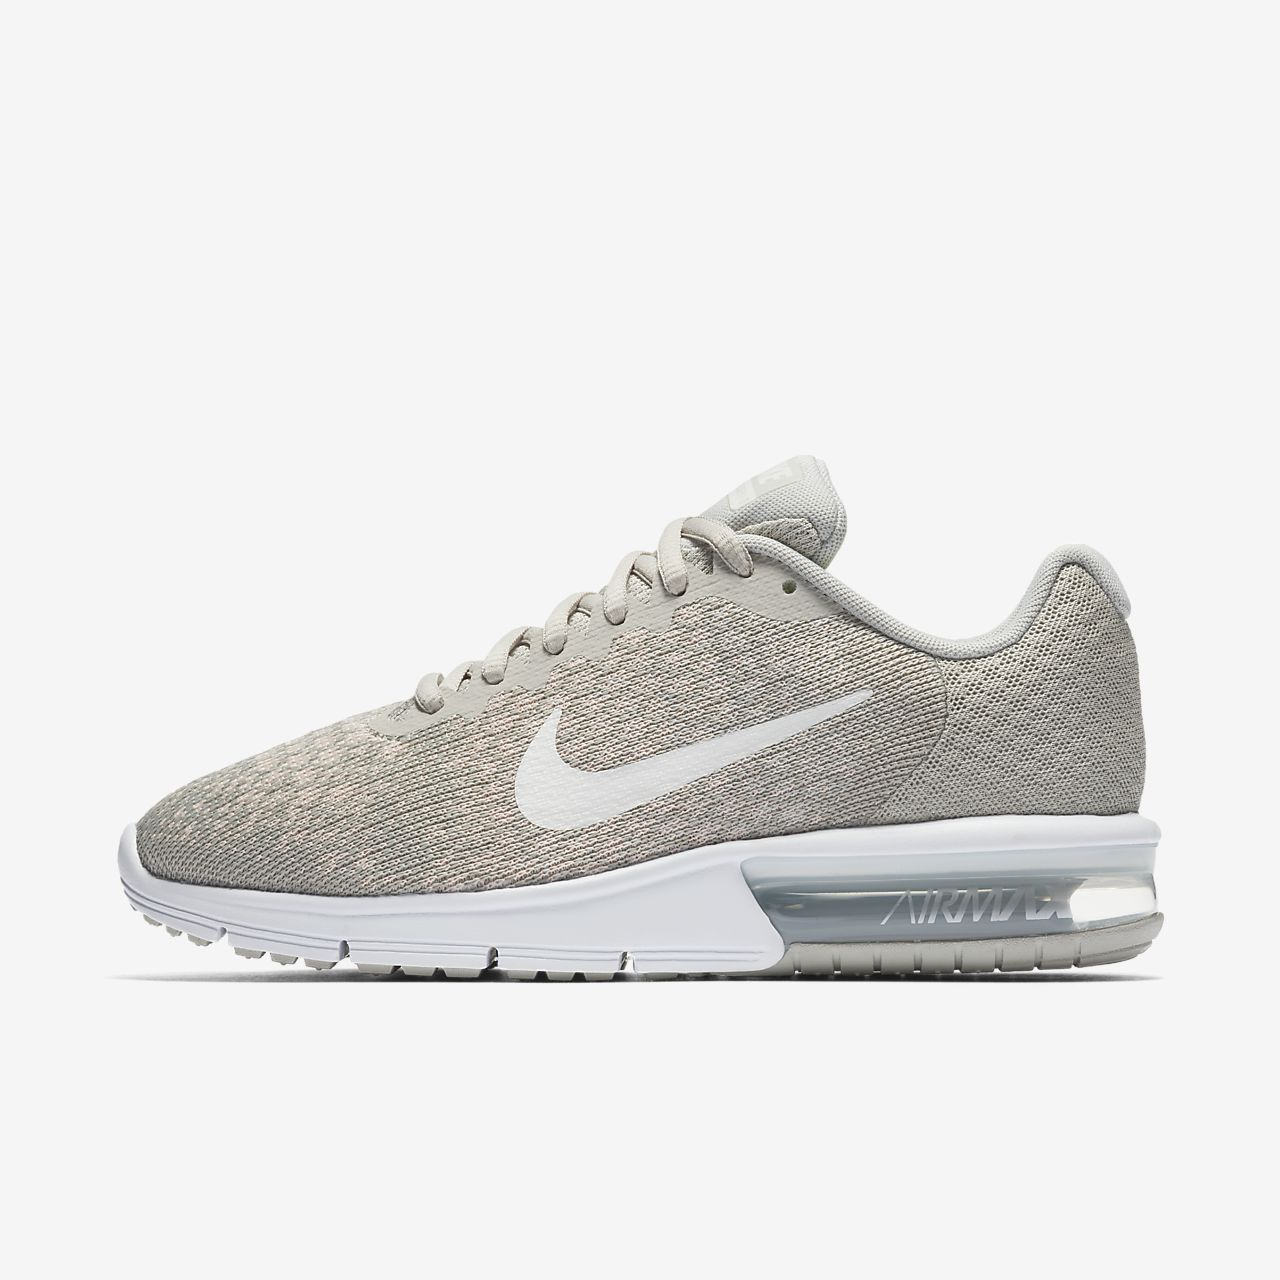 nike wmns air max sequent 2 chaussures de running femme